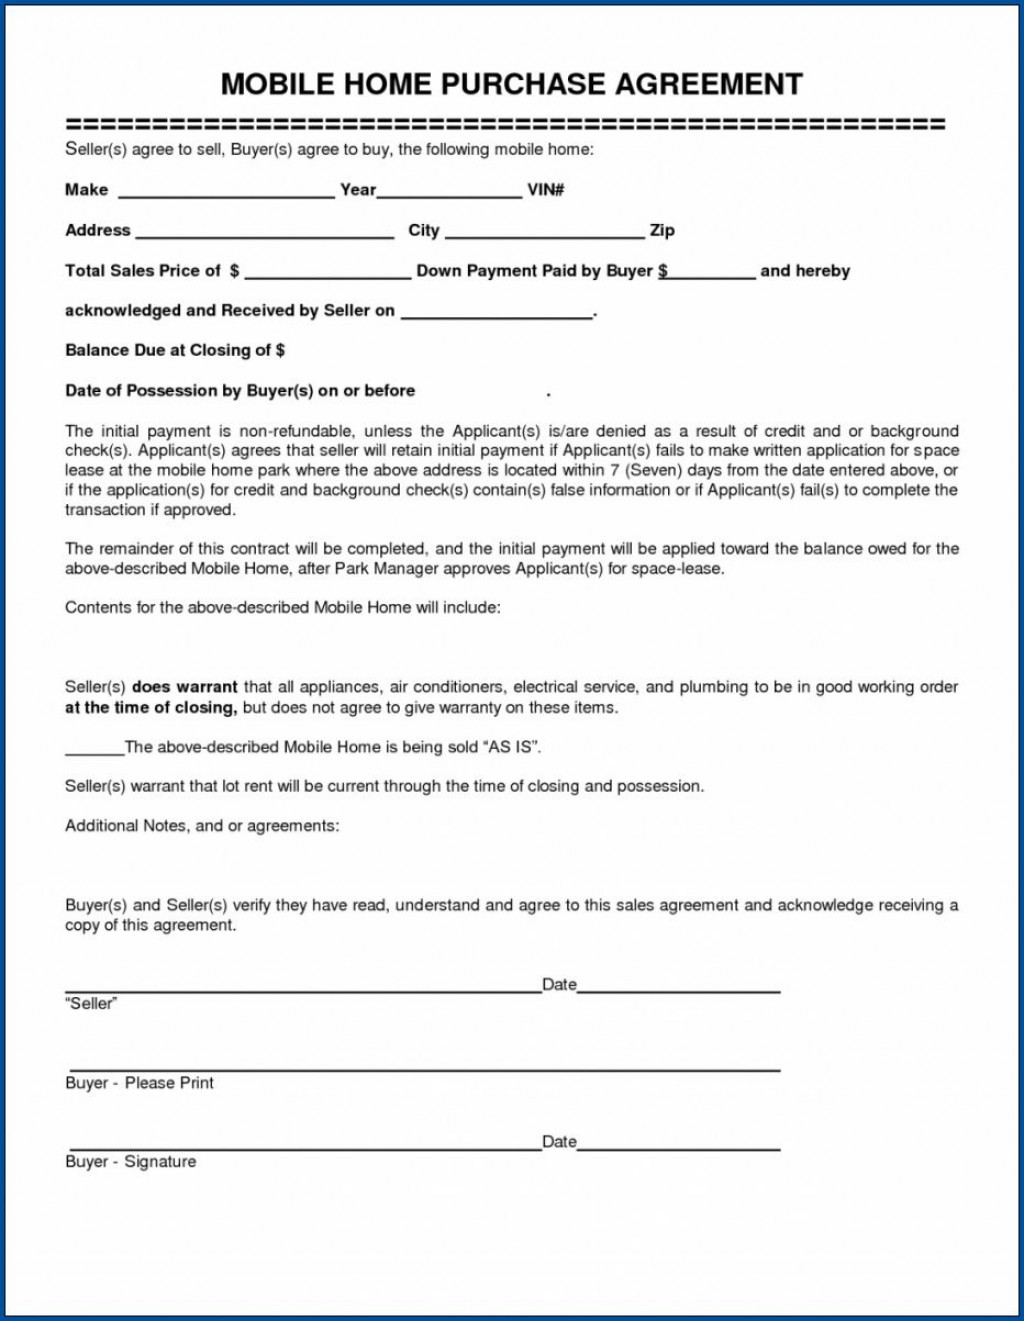 009 Shocking Purchase Agreement Template For Home Image  MobileLarge